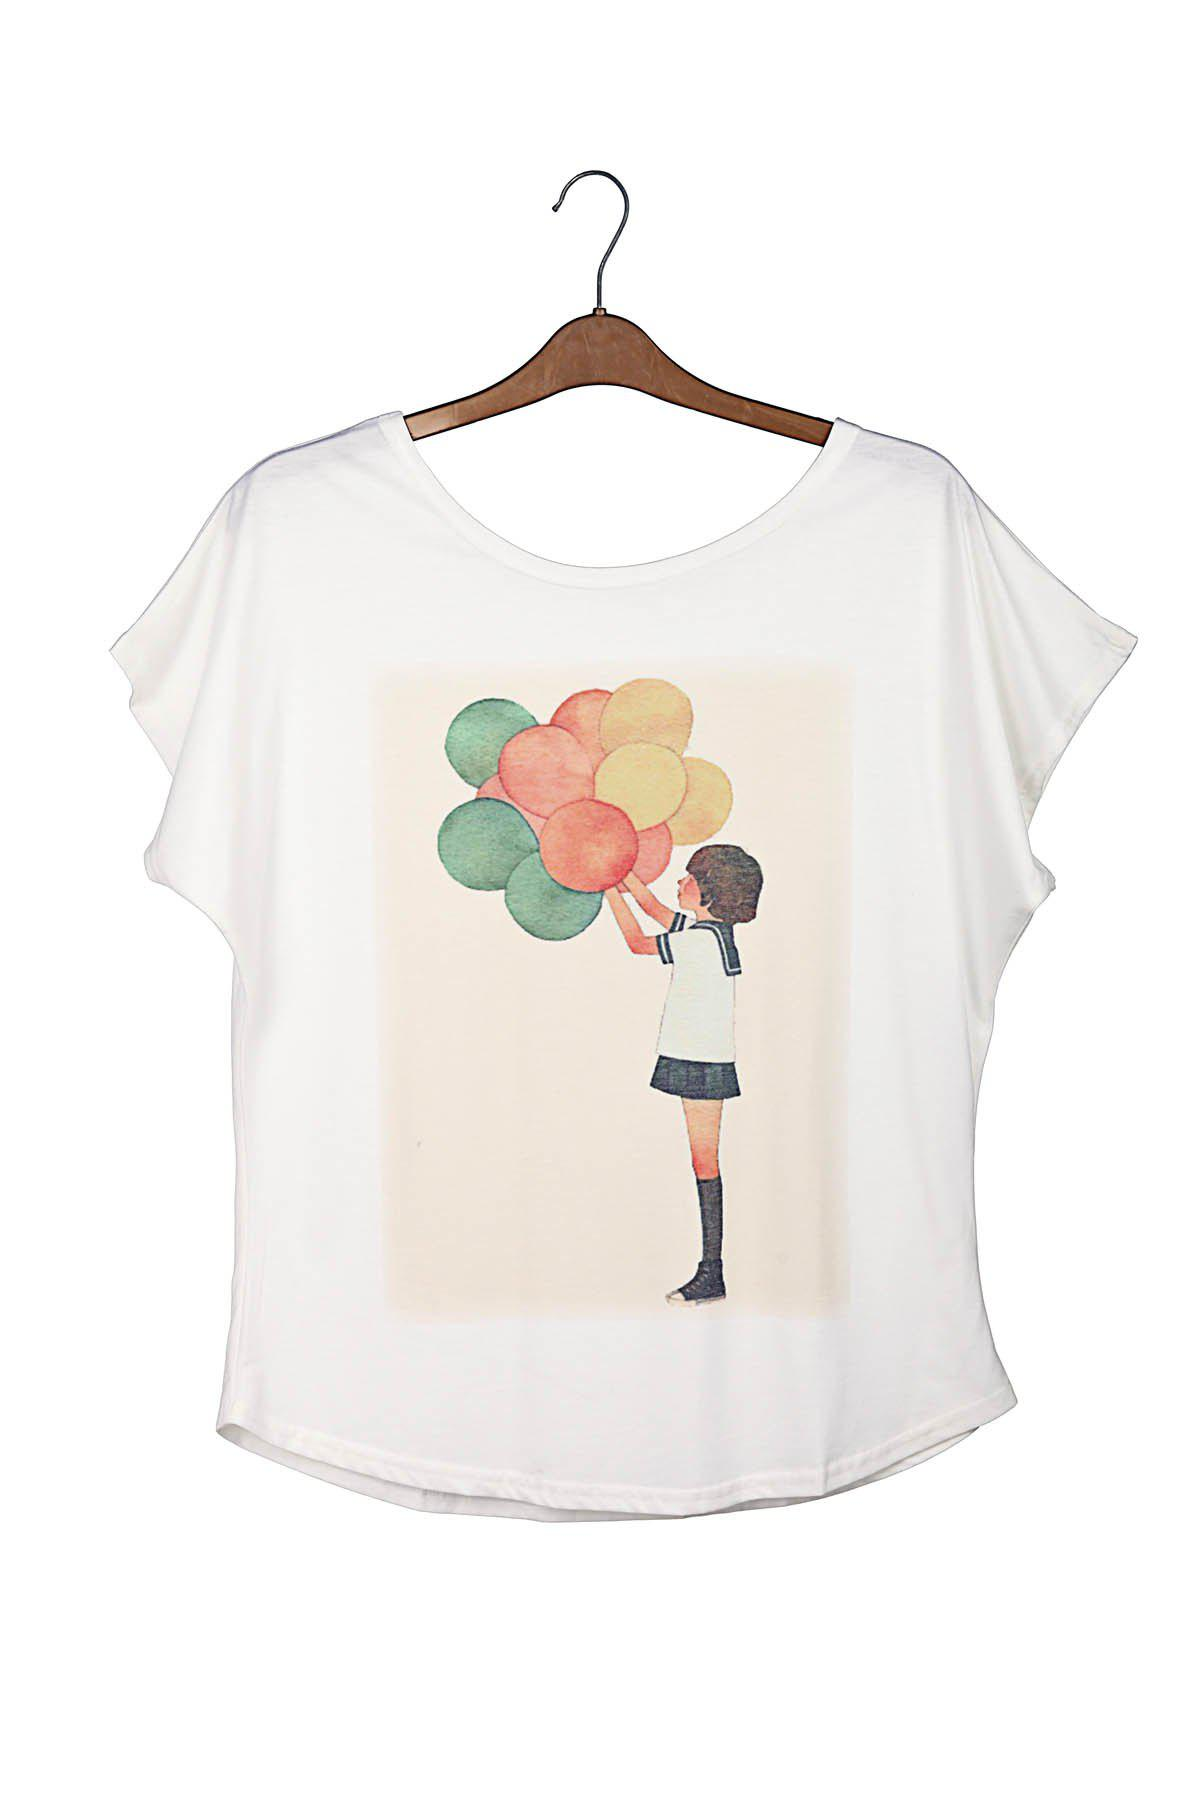 Balloon Print Laconic Scoop Neck Batwing Sleeve Women's T-Shirt - WHITE ONE SIZE